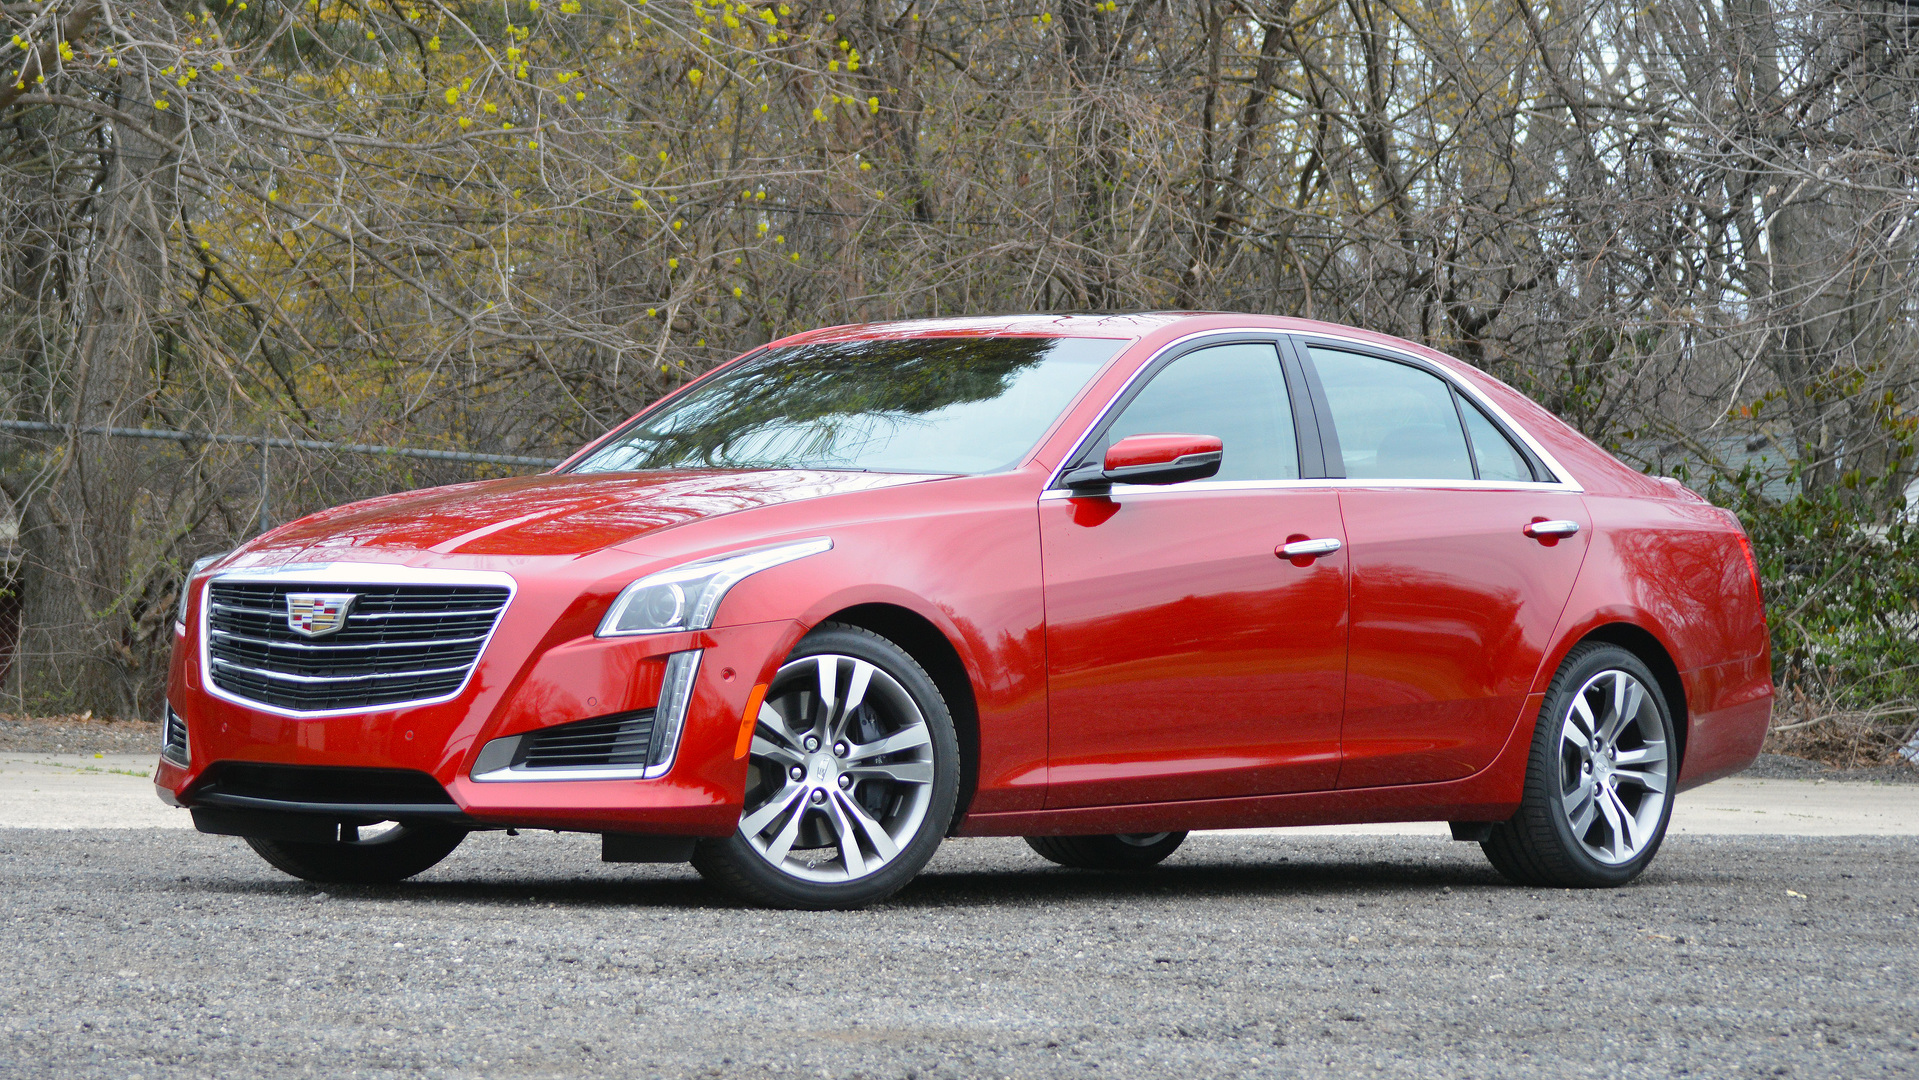 how ot cadillac edmunds is much a review ratings